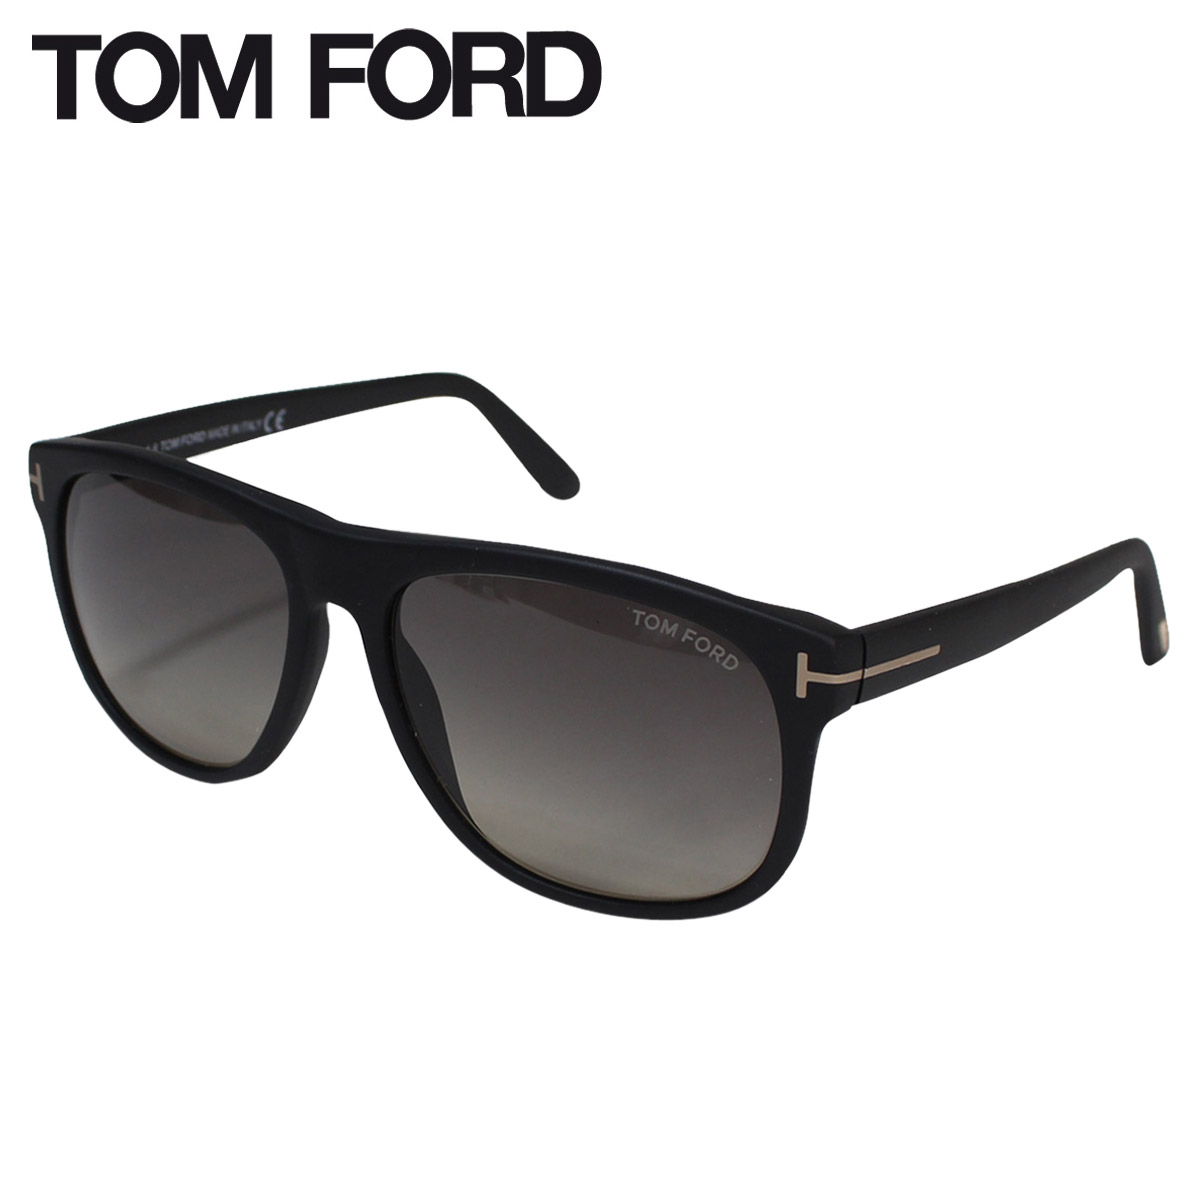 allsports tom ford sunglasses mens womens tom ford. Black Bedroom Furniture Sets. Home Design Ideas